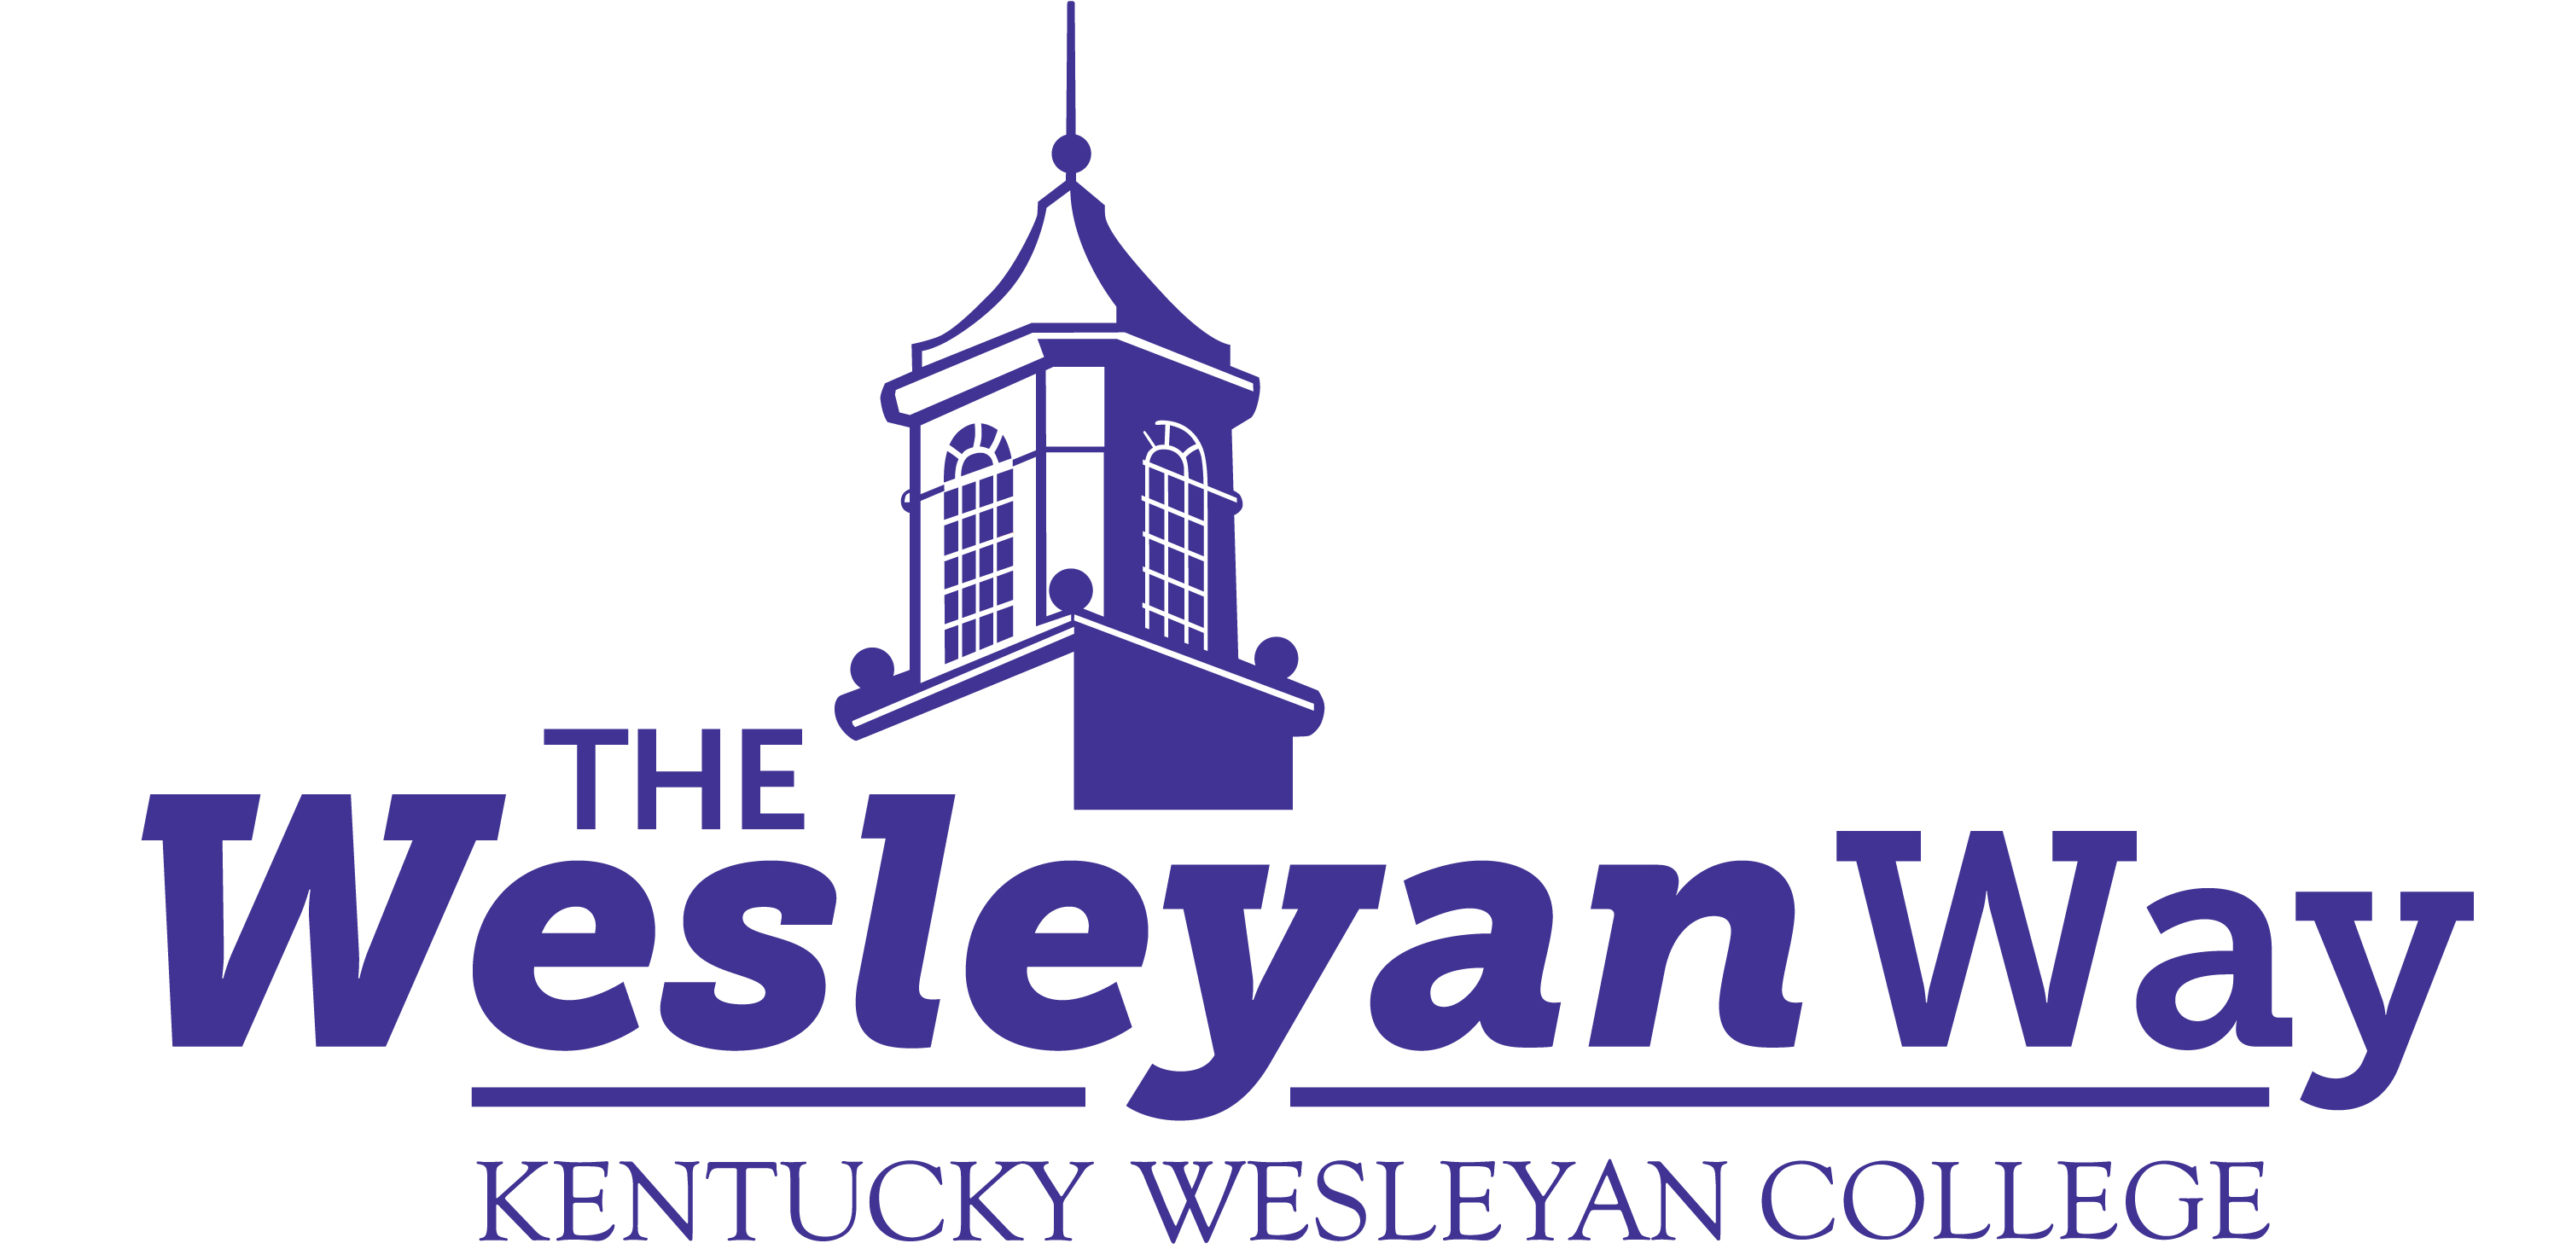 Kentucky Wesleyan looking to top $600,000 on Giving Tuesday